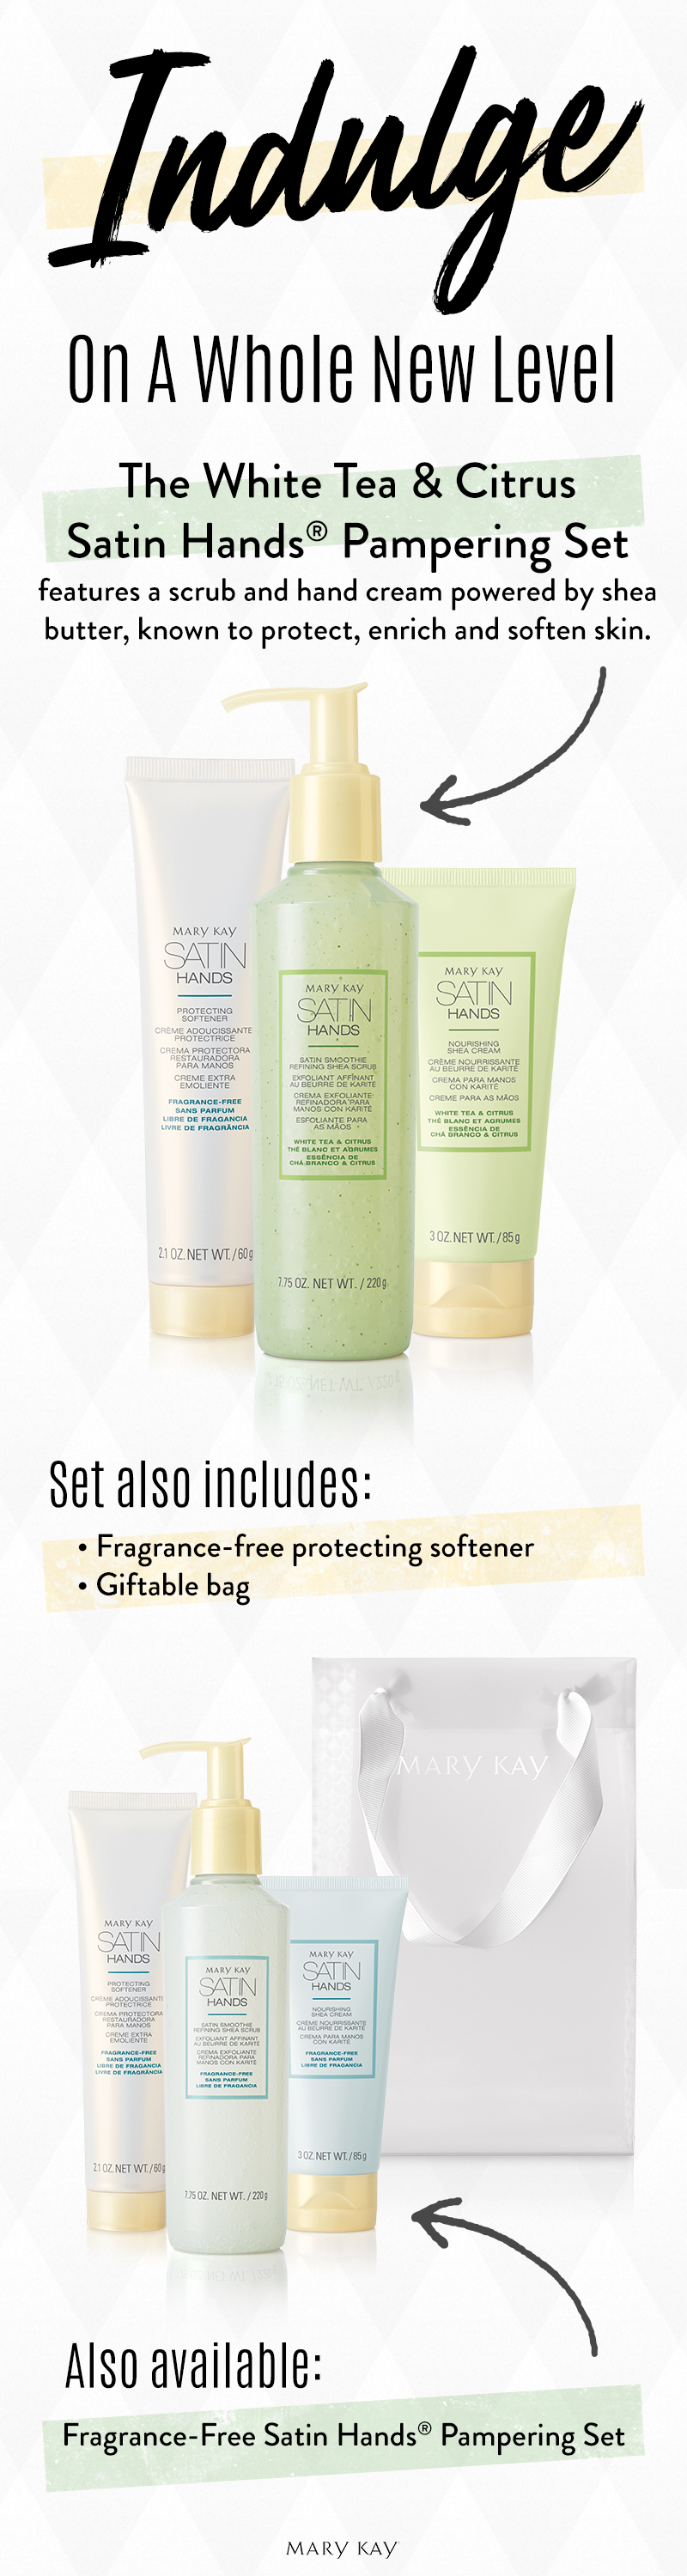 Experience The Bliss Fragrance Free Satin Hands Pampering Set